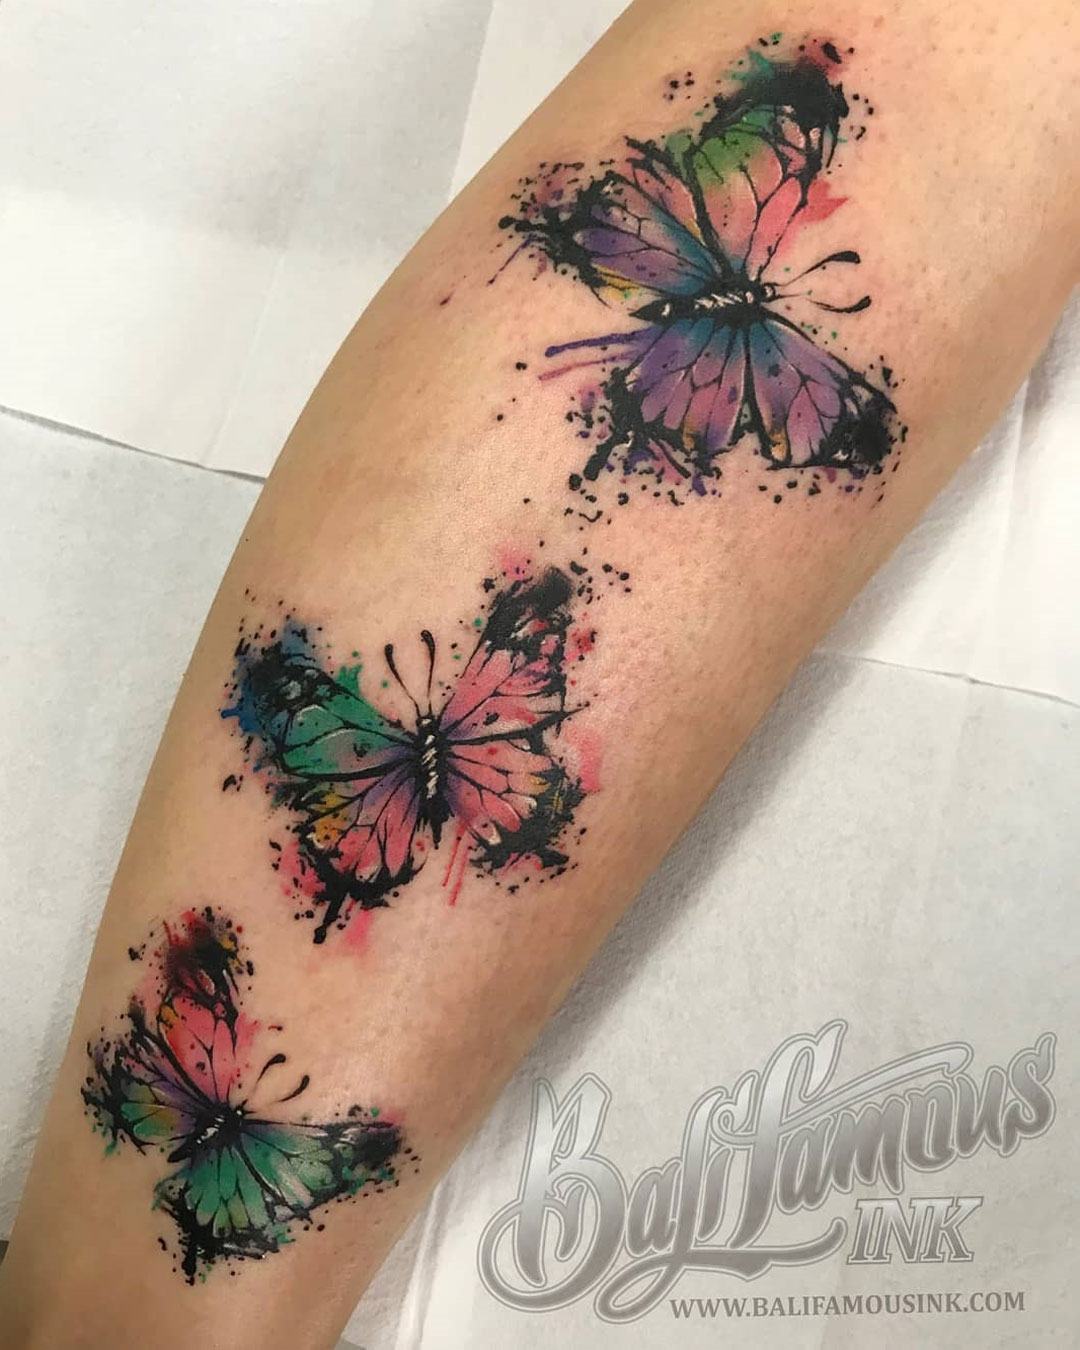 Bali-Famous-Ink-Tattoo-Bali-color-tattoo-3